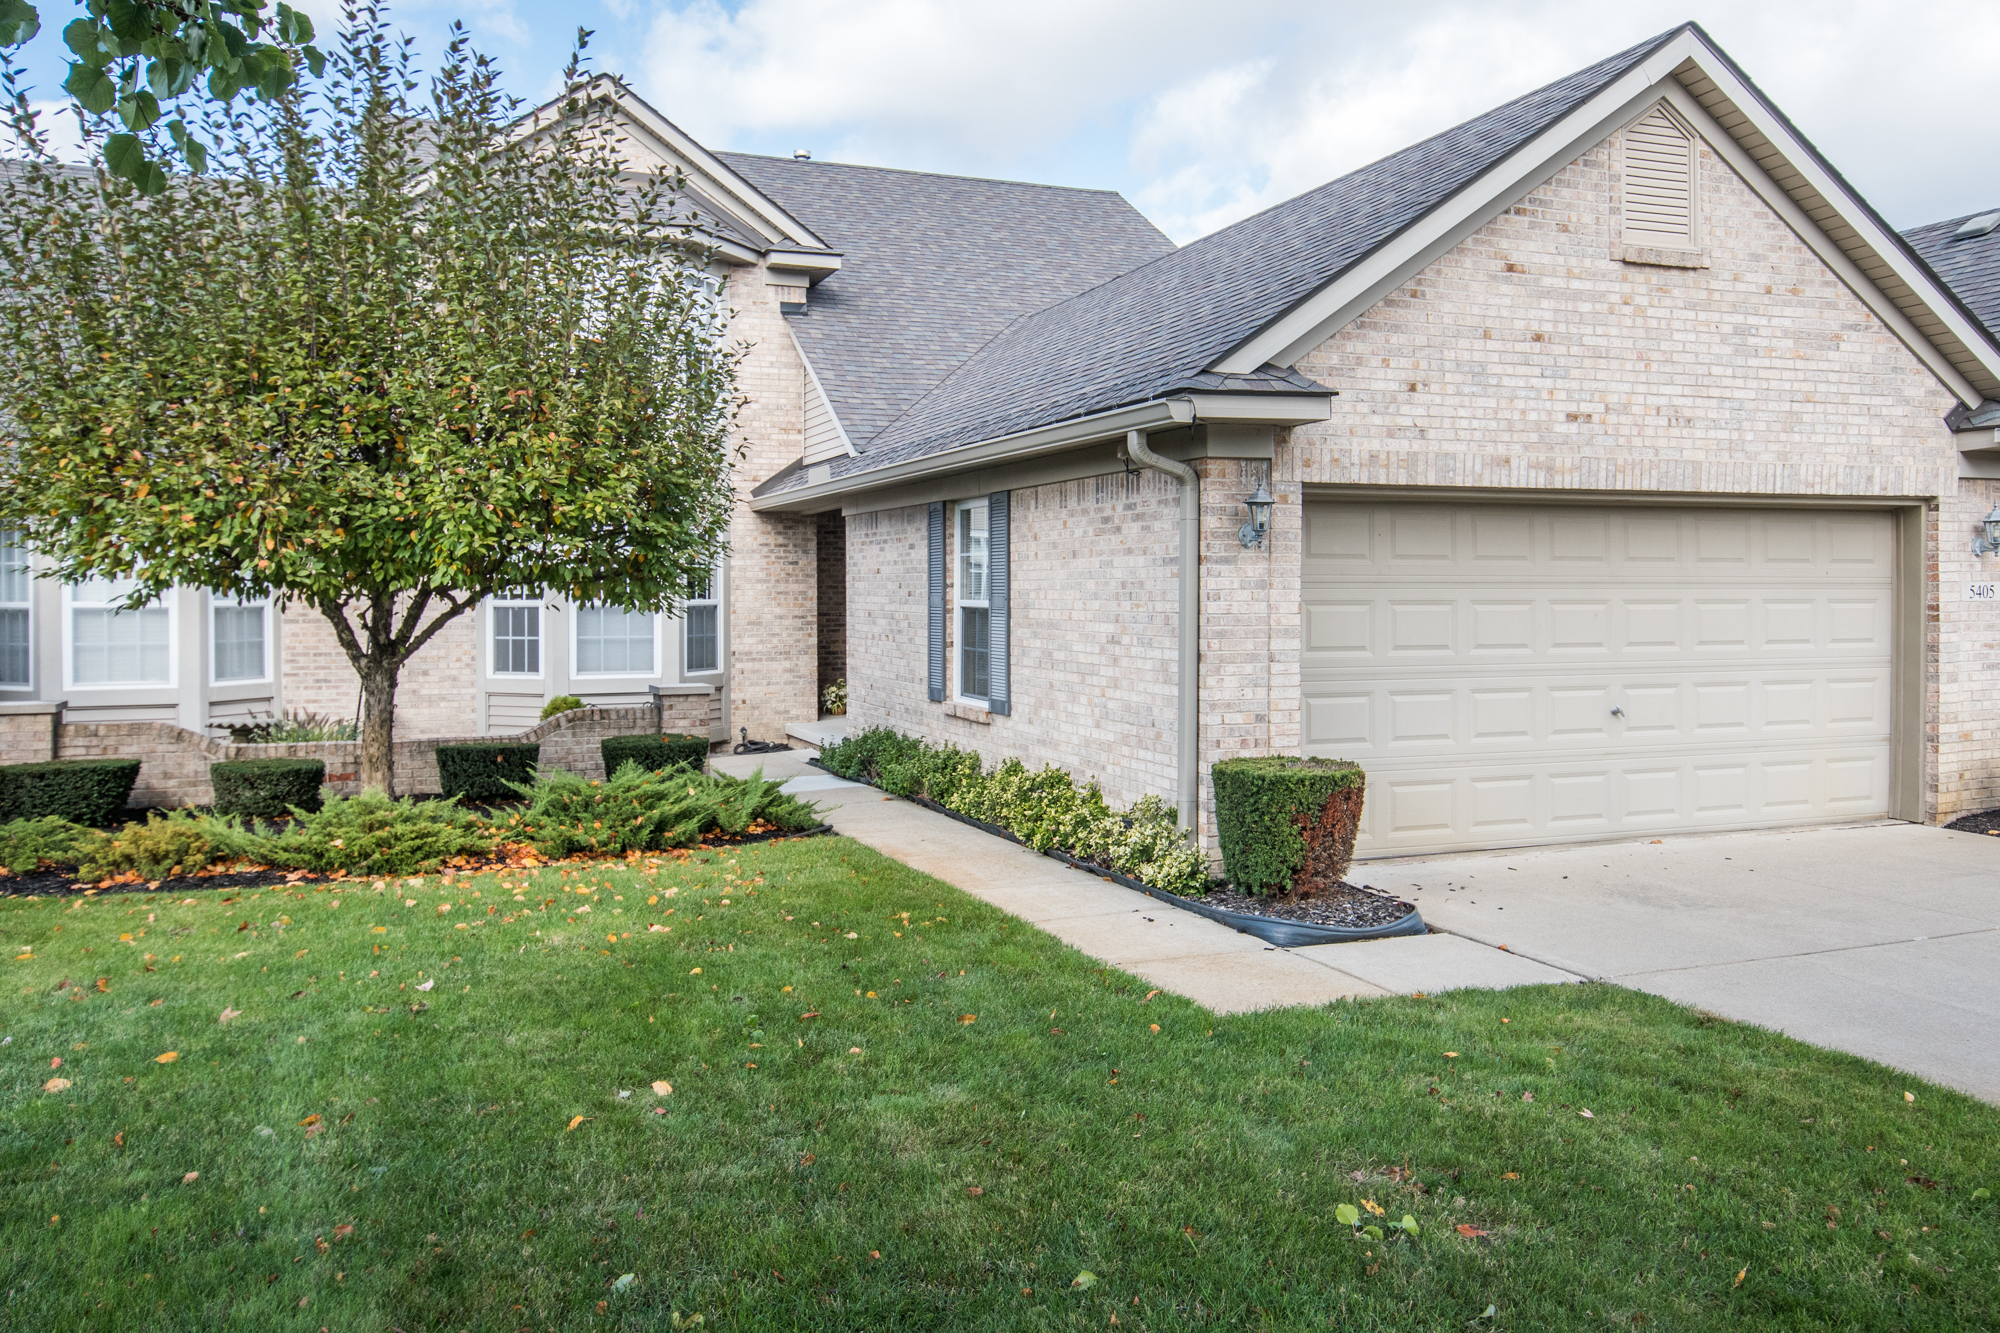 Ivy Court, Howell - $257,200   DOM 209 / Sold for 97% of asking price / 37 Showings